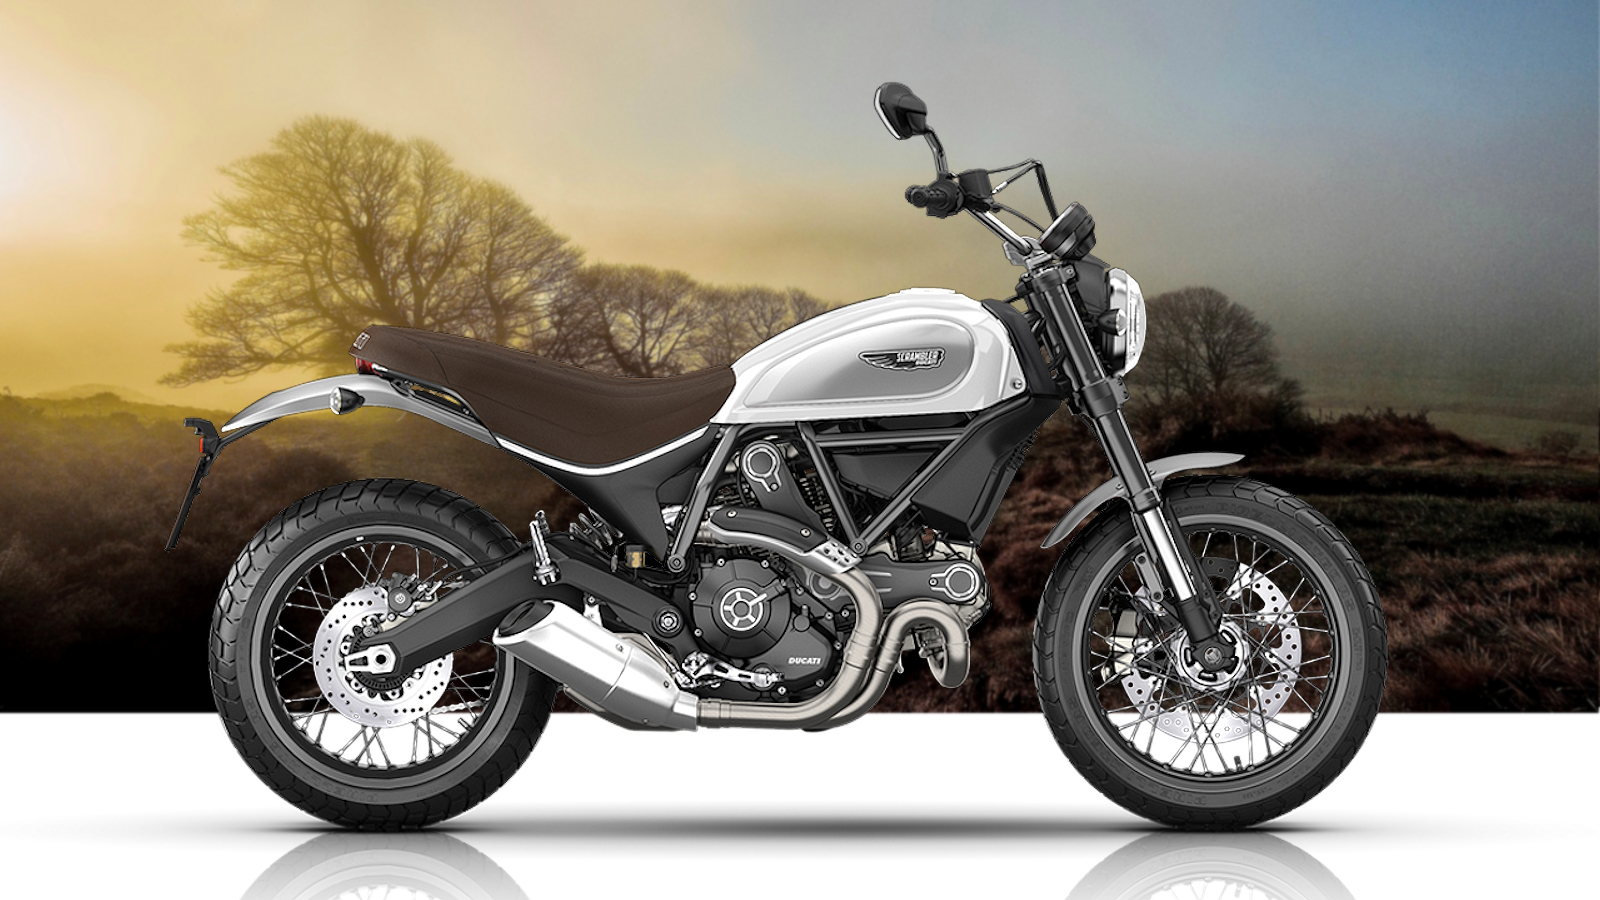 2015 - 2018 ducati scrambler classic pictures, photos, wallpapers